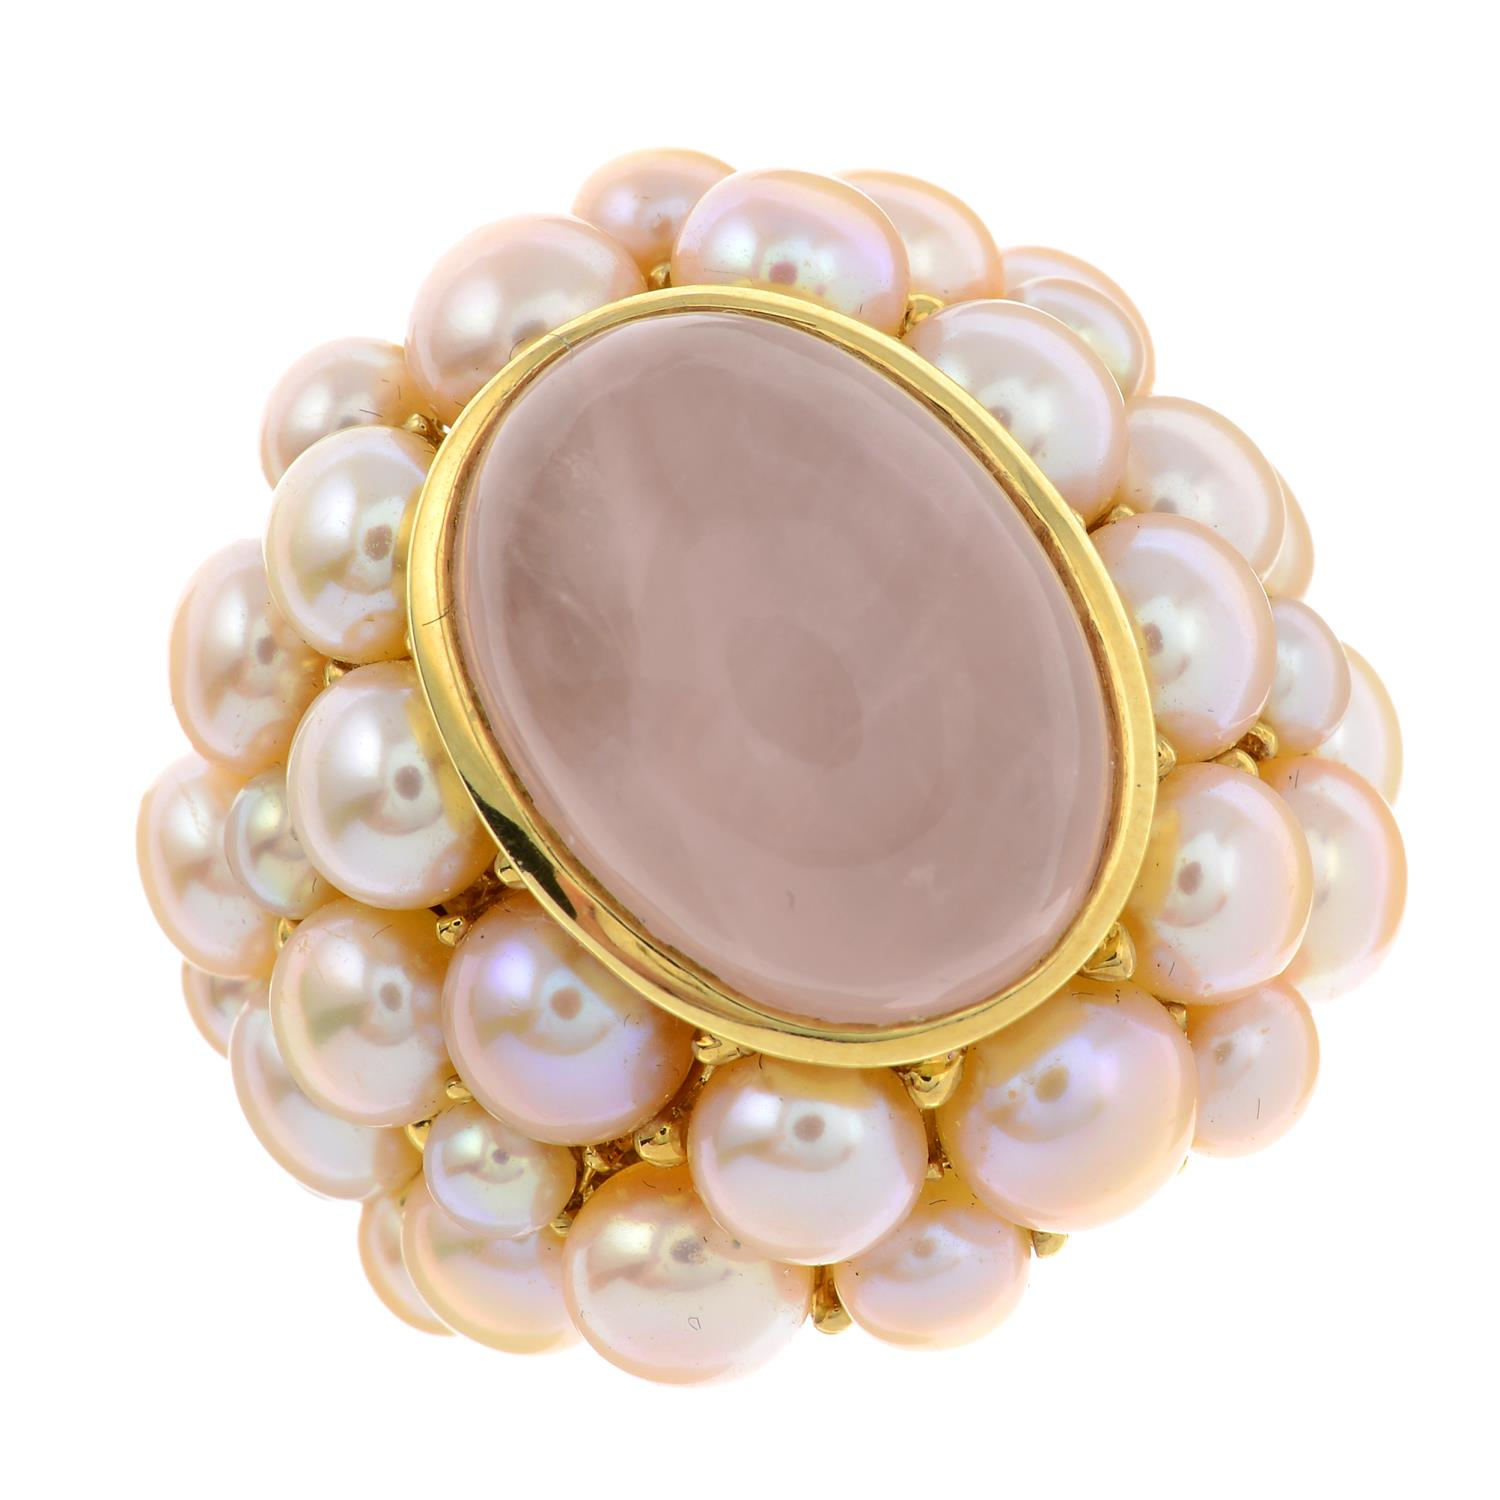 A rose quartz cabochon and pink cultured pearl cocktail ring, by Mimi.Signed Mimi.Stamped 750. - Image 2 of 6